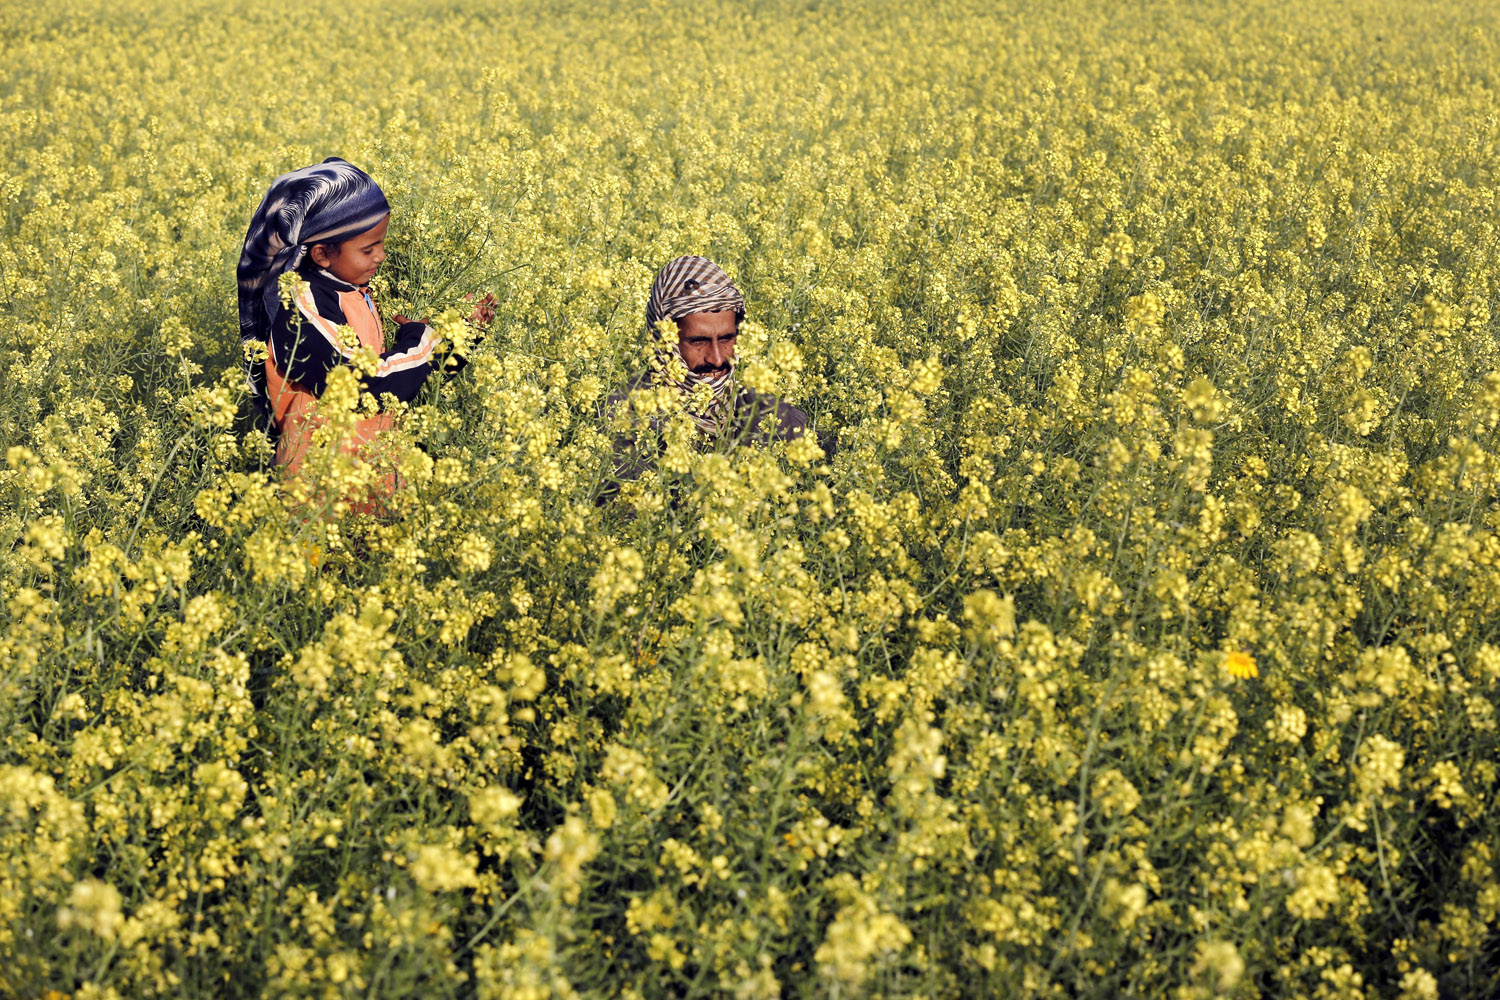 Mar. 20, 2014. A Palestinian man and his daughter are seen amongst wild mustard flowers which grow in the untilled fields across the Gaza Strip.